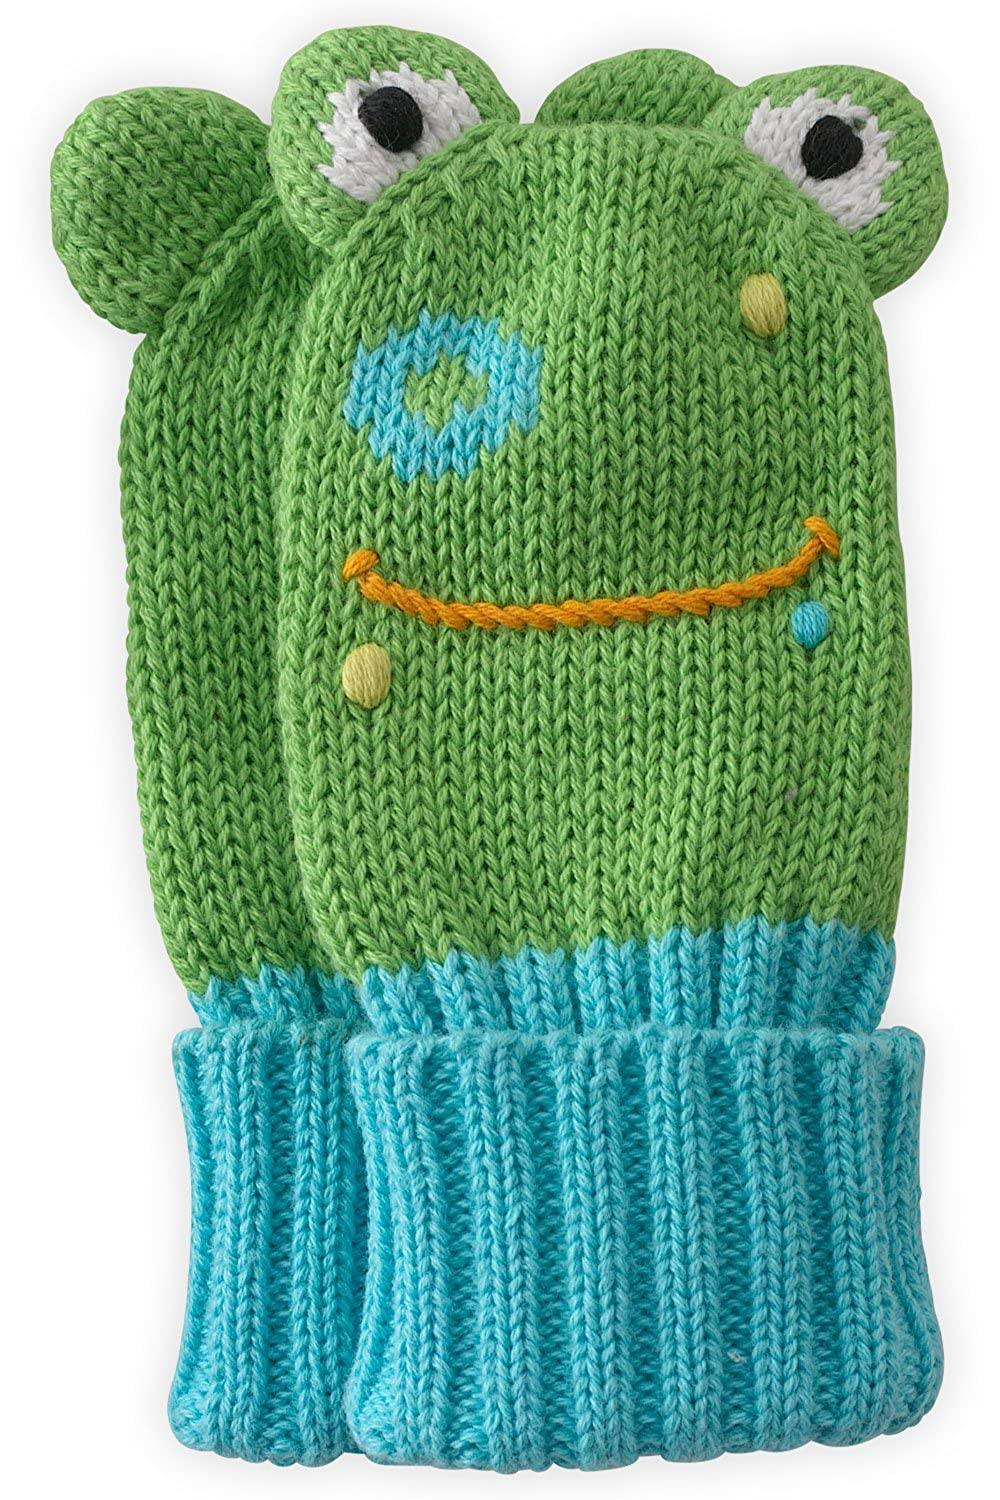 Joobles Organic Baby Mittens - Flop the Frog (0-6 Months) 04344-0015819